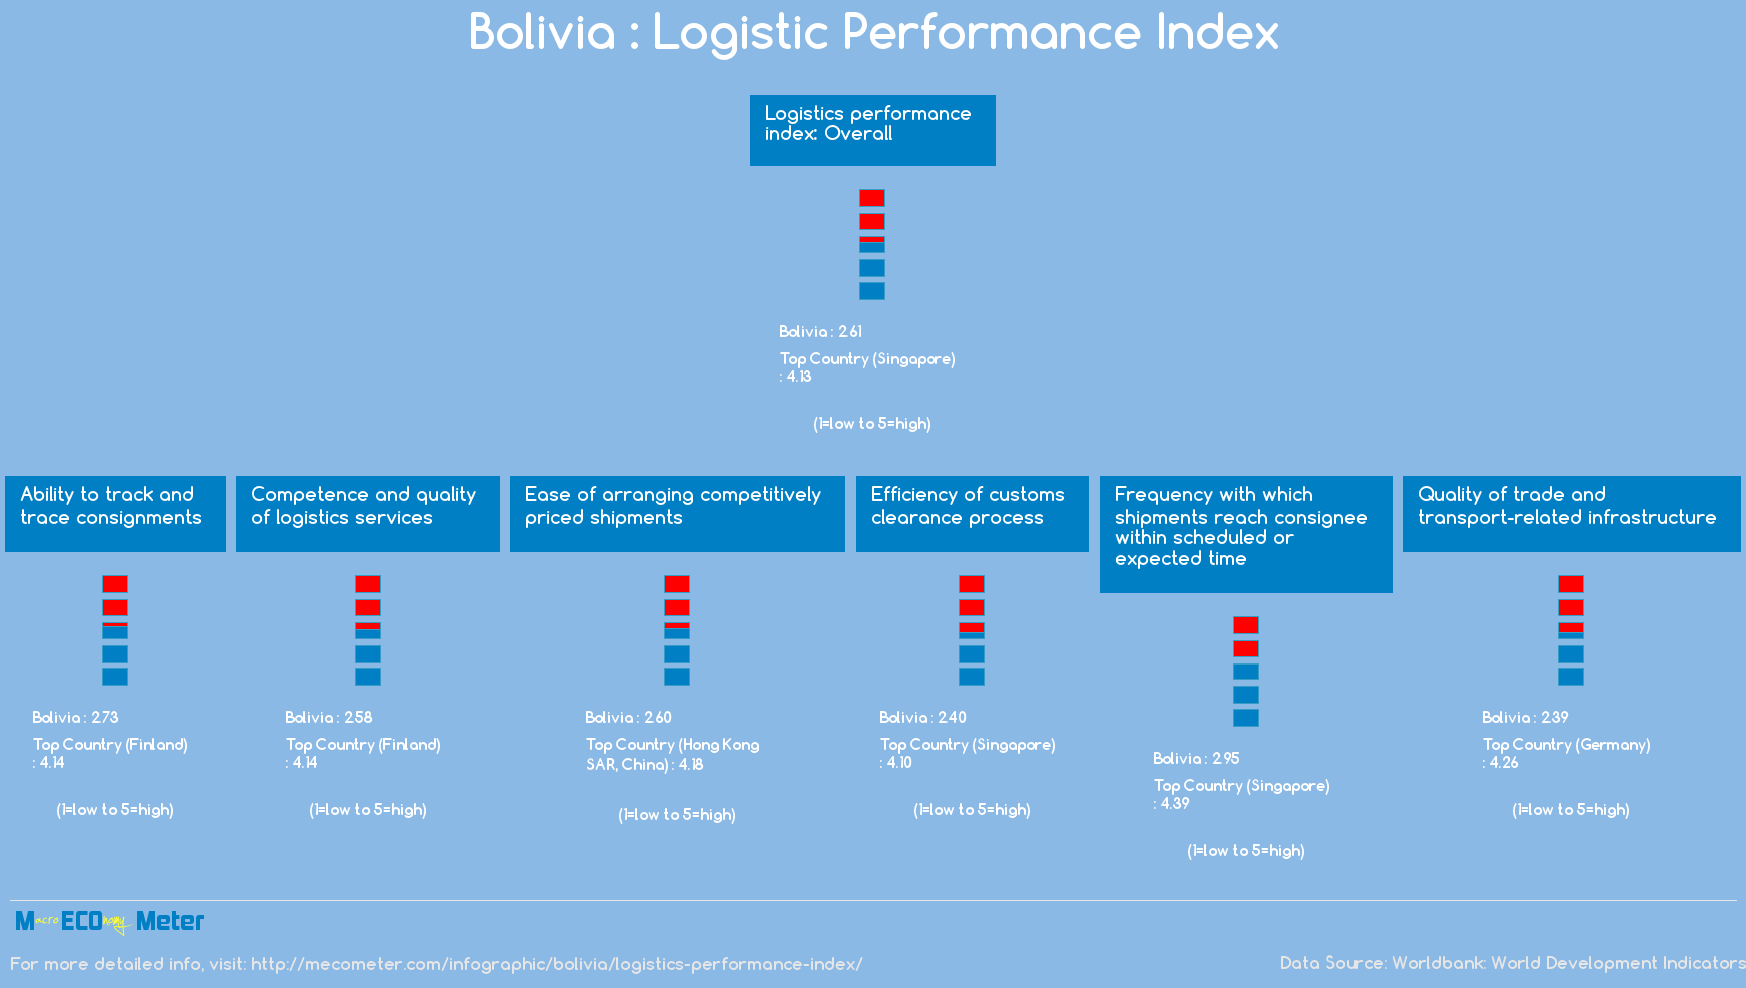 Bolivia : Logistic Performance Index